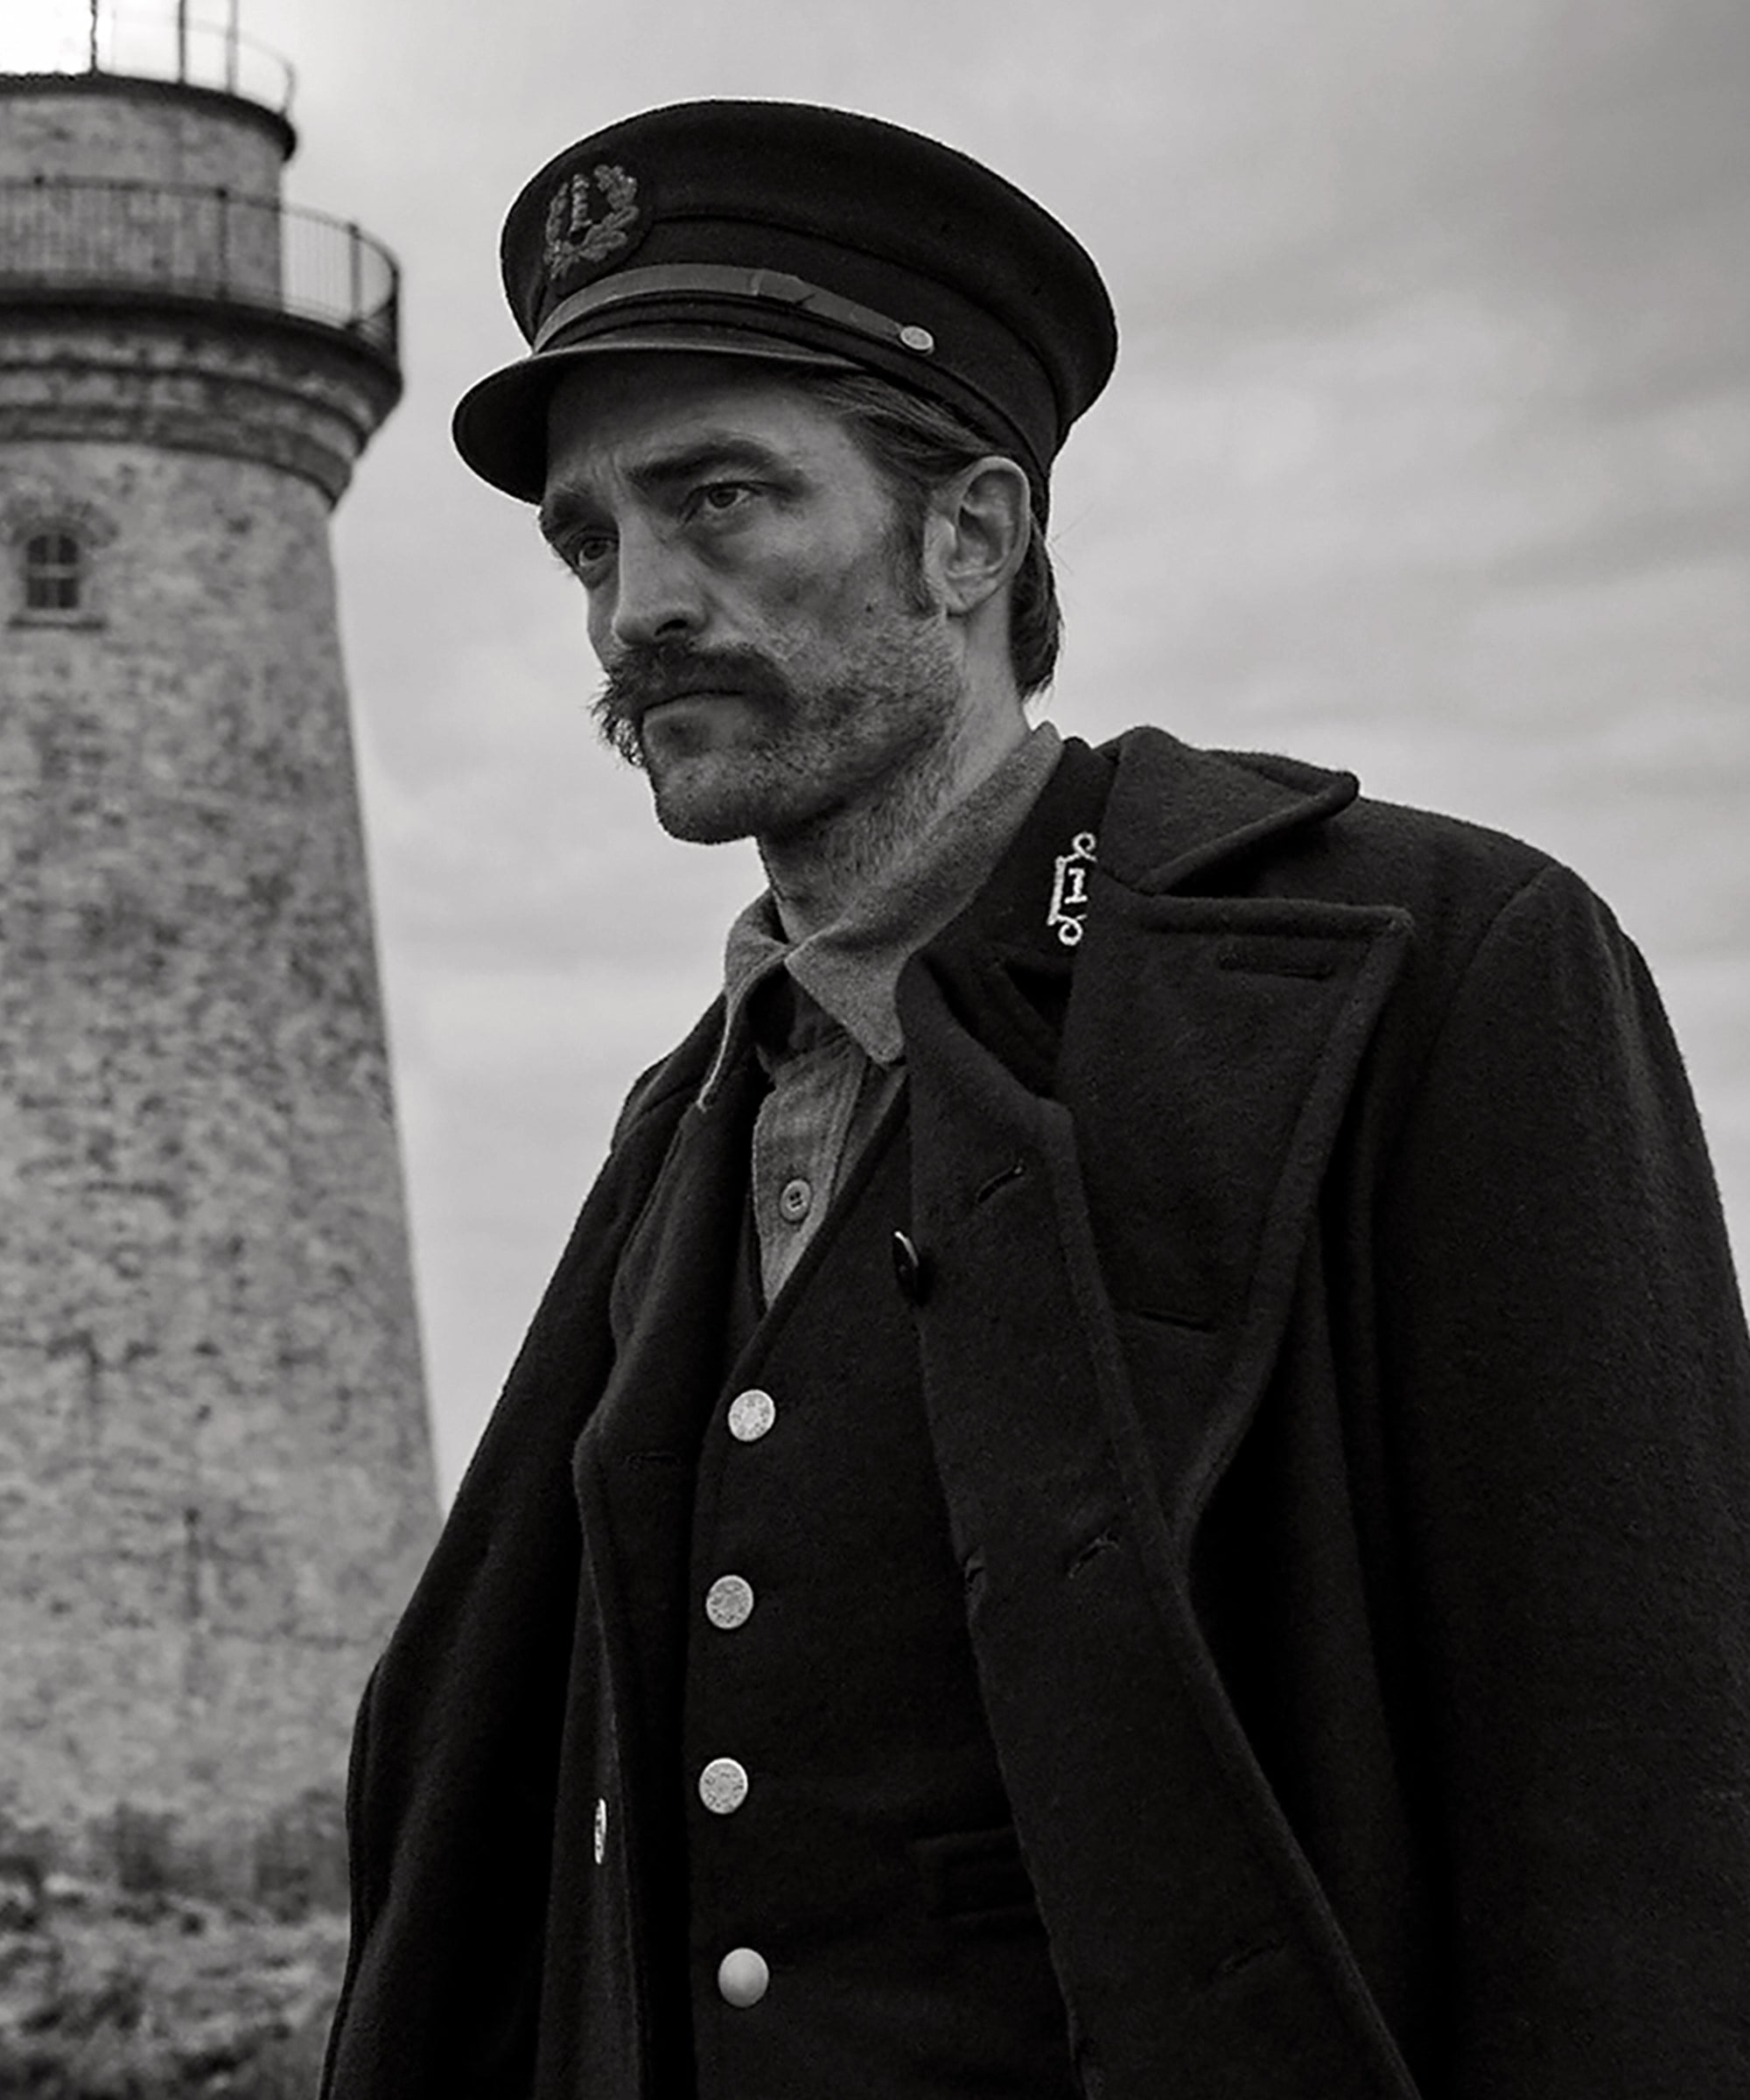 Robert Pattinson's Spooky New Movie The Lighthouse Was Inspired By A True Story